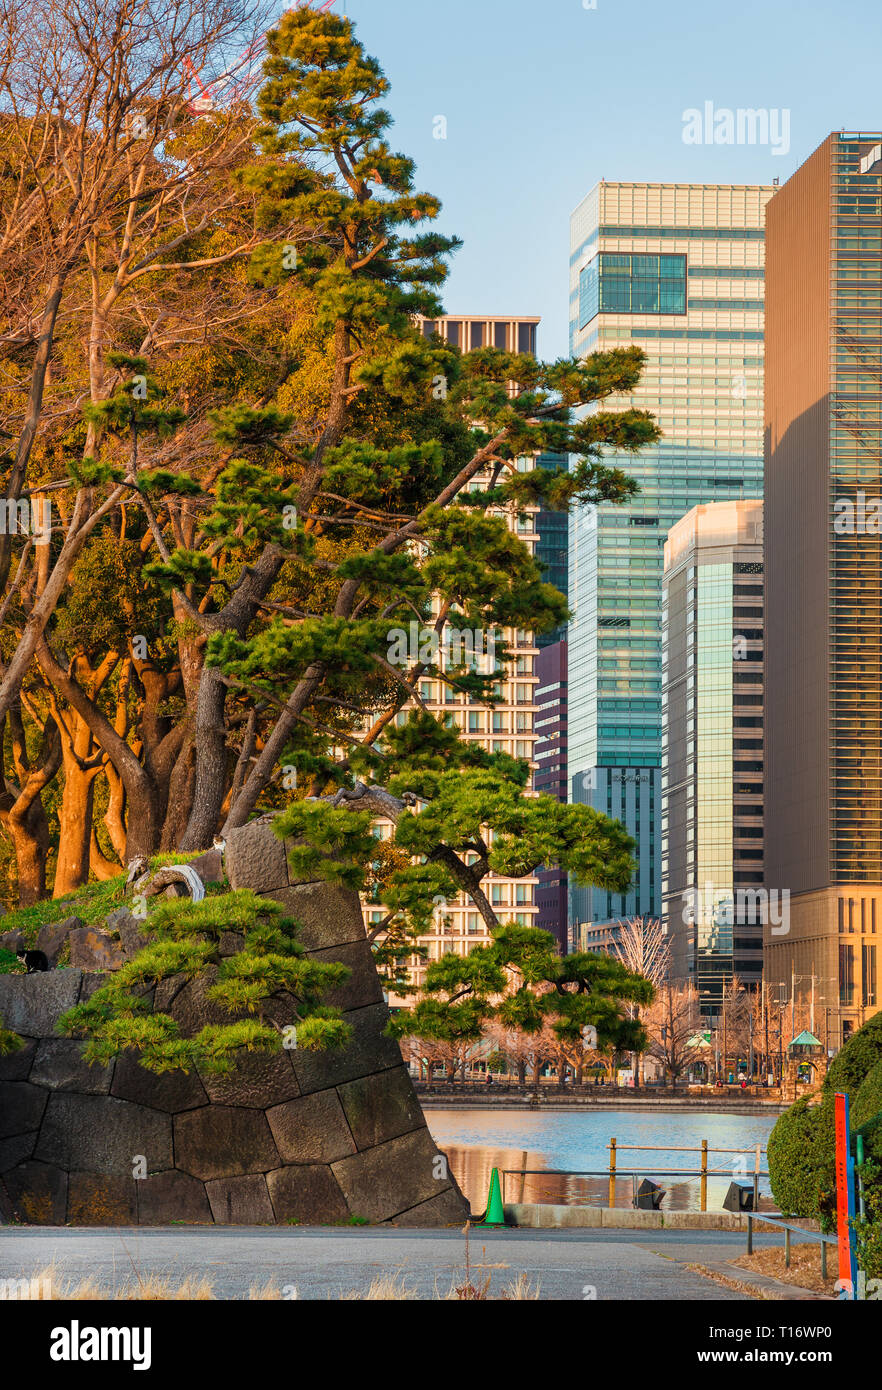 Japan between tradition and modernity. City center modern buildings in front of Tokyo Castle old walls and moats - Stock Image